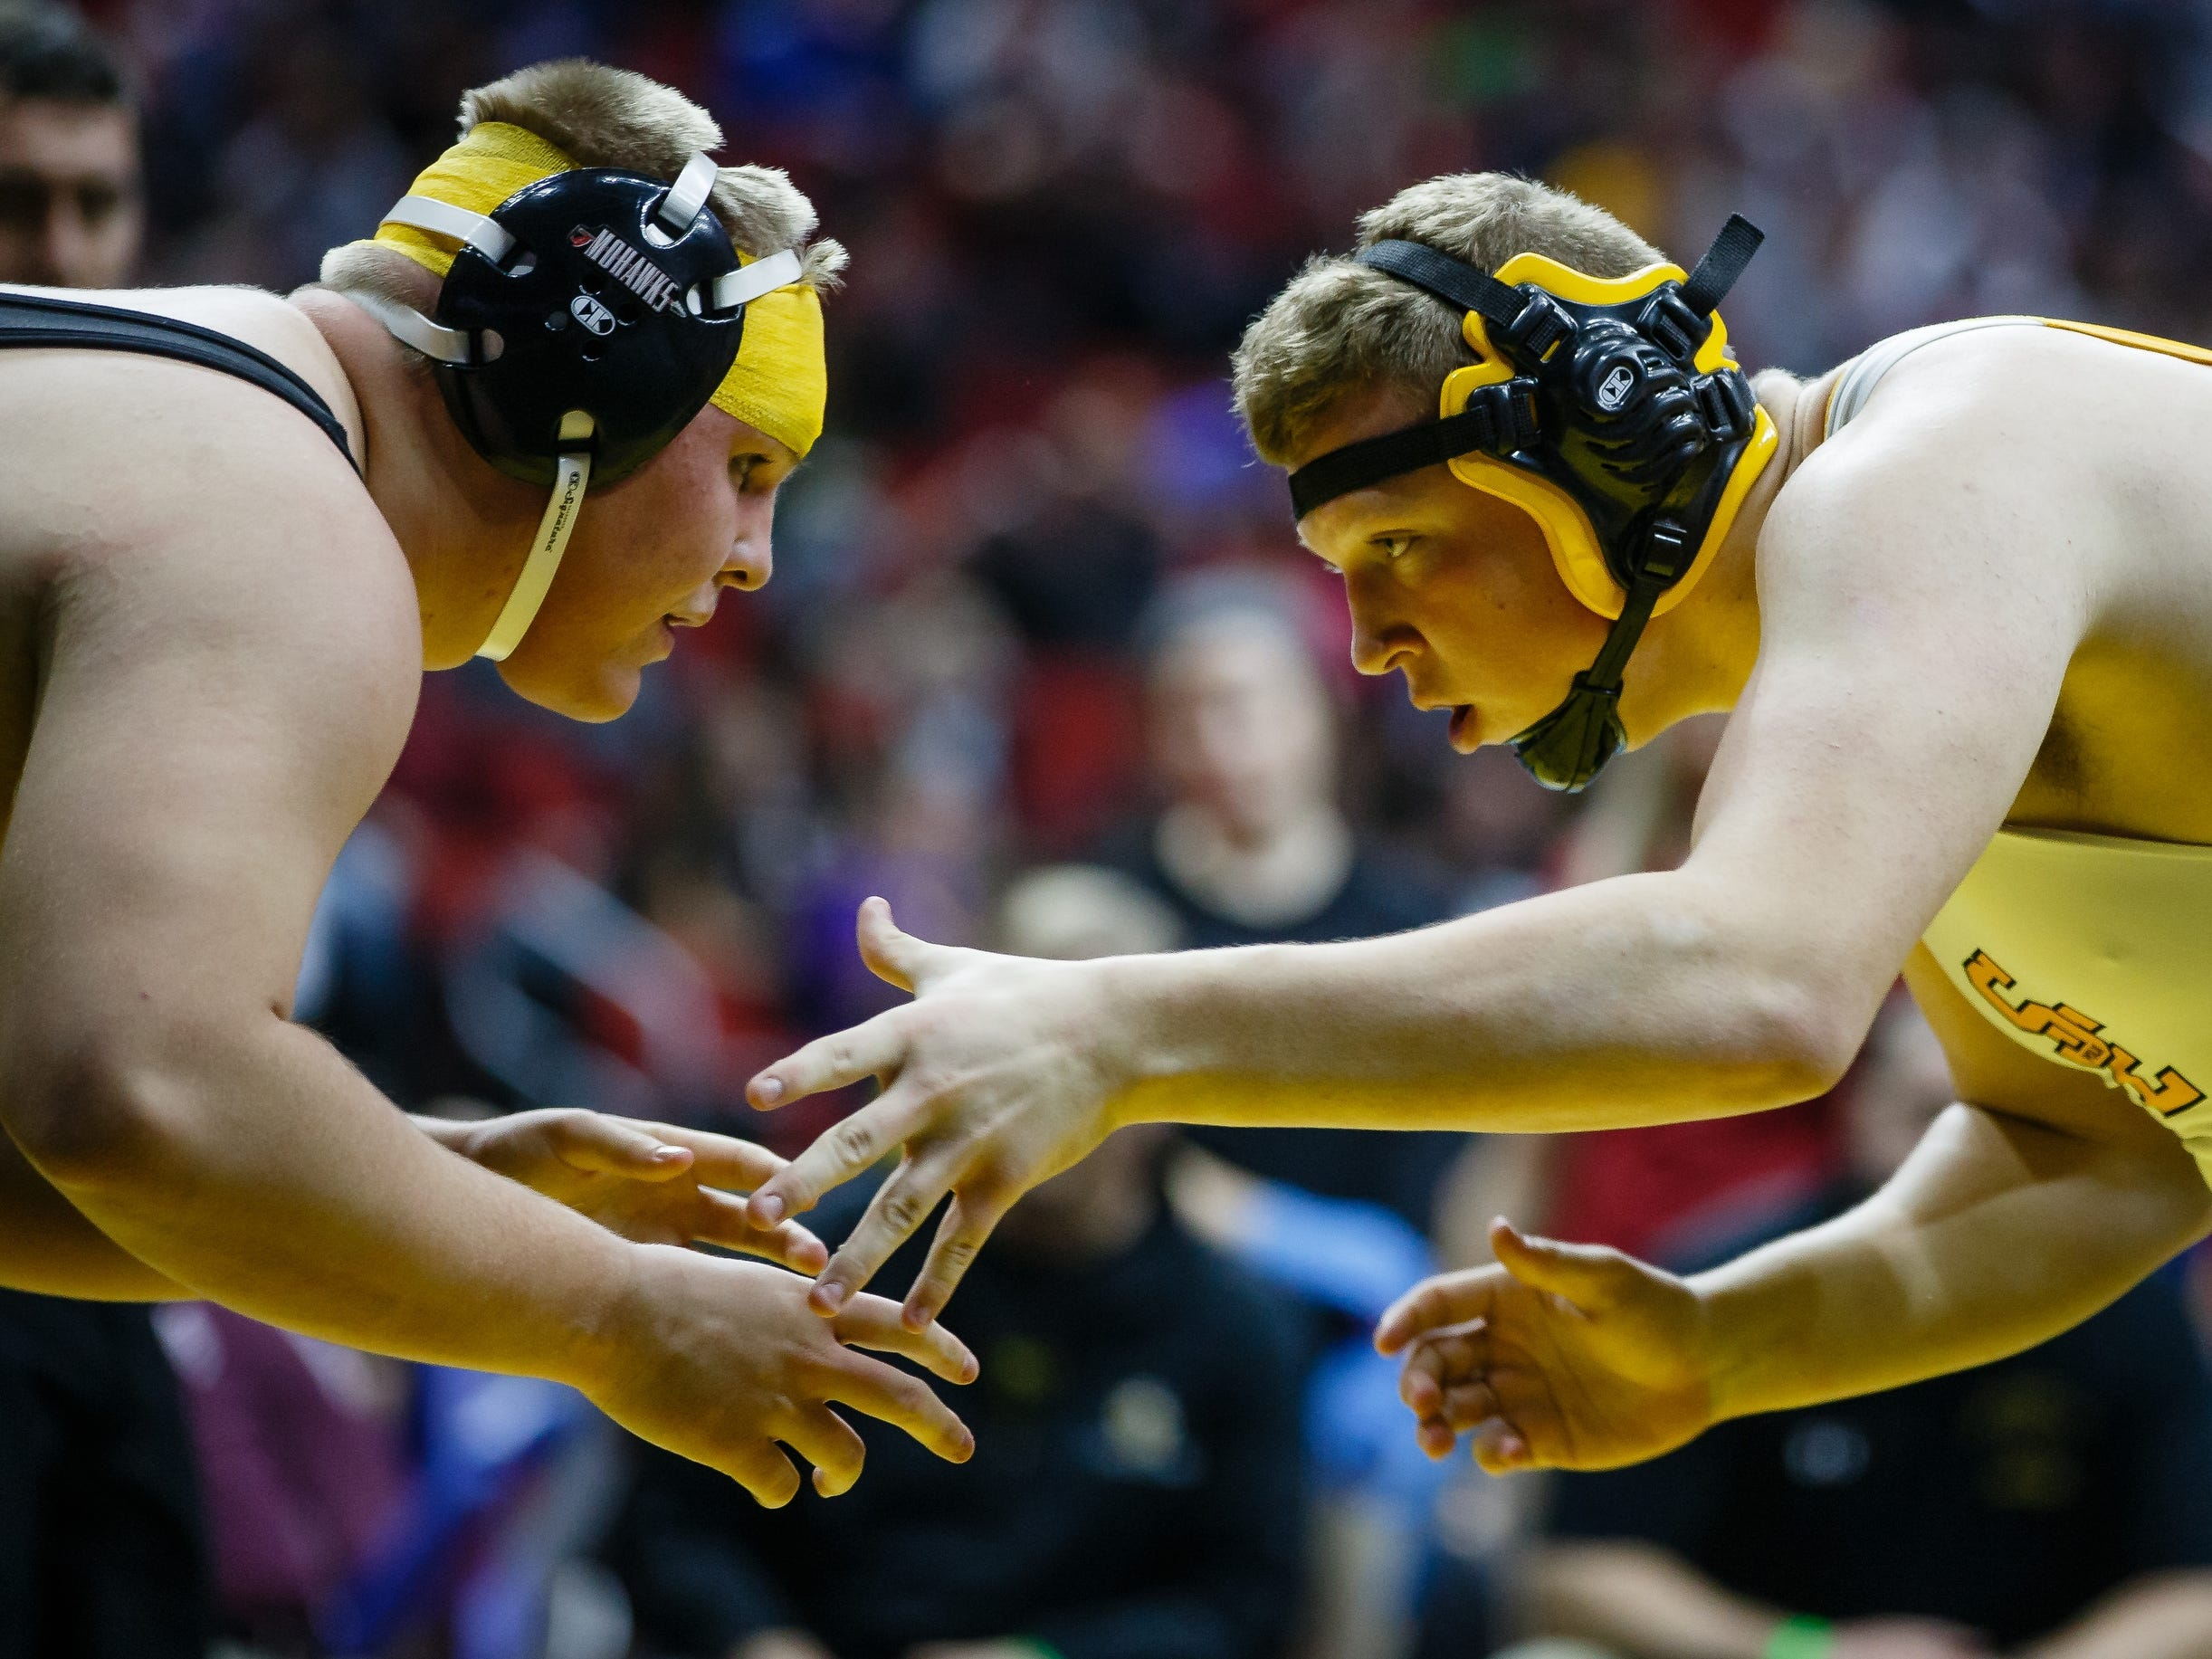 Troy Monahan of Mason City wrestles Connor Brown of Southeast Polk during their 3A 285 lb match at the state wrestling tournament on Thursday, Feb. 14, 2019 in Des Moines.